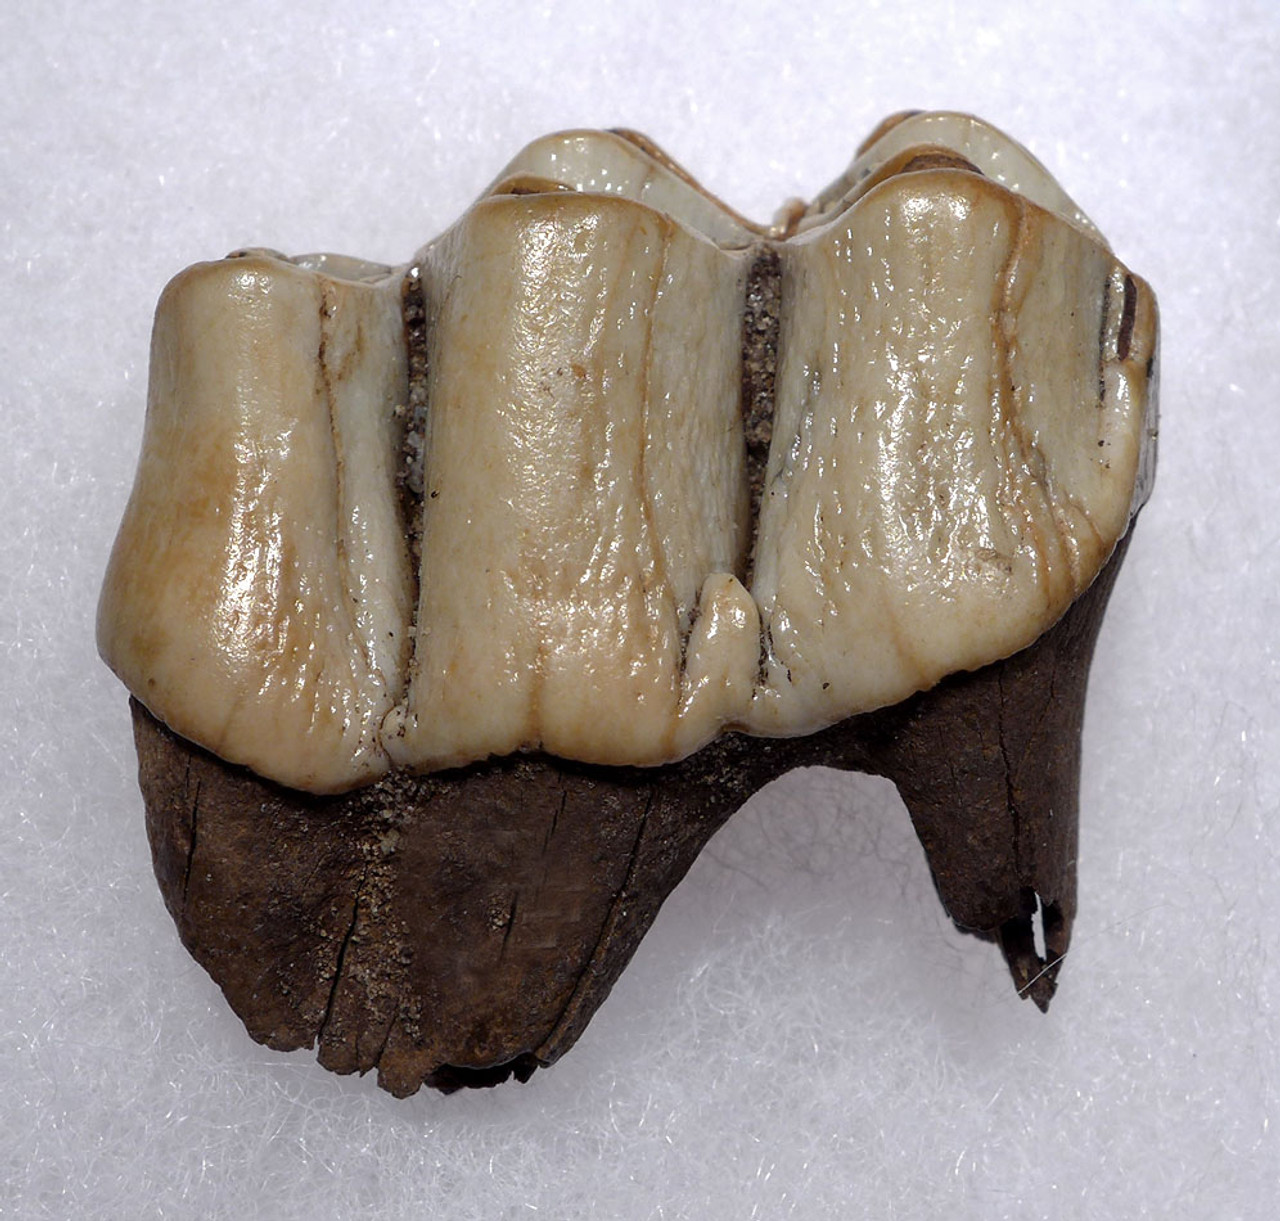 FINEST MEGALOCEROS GIANT DEER MOLAR FOSSIL TOOTH WITH CHOICE PRESERVATION  *LMX247